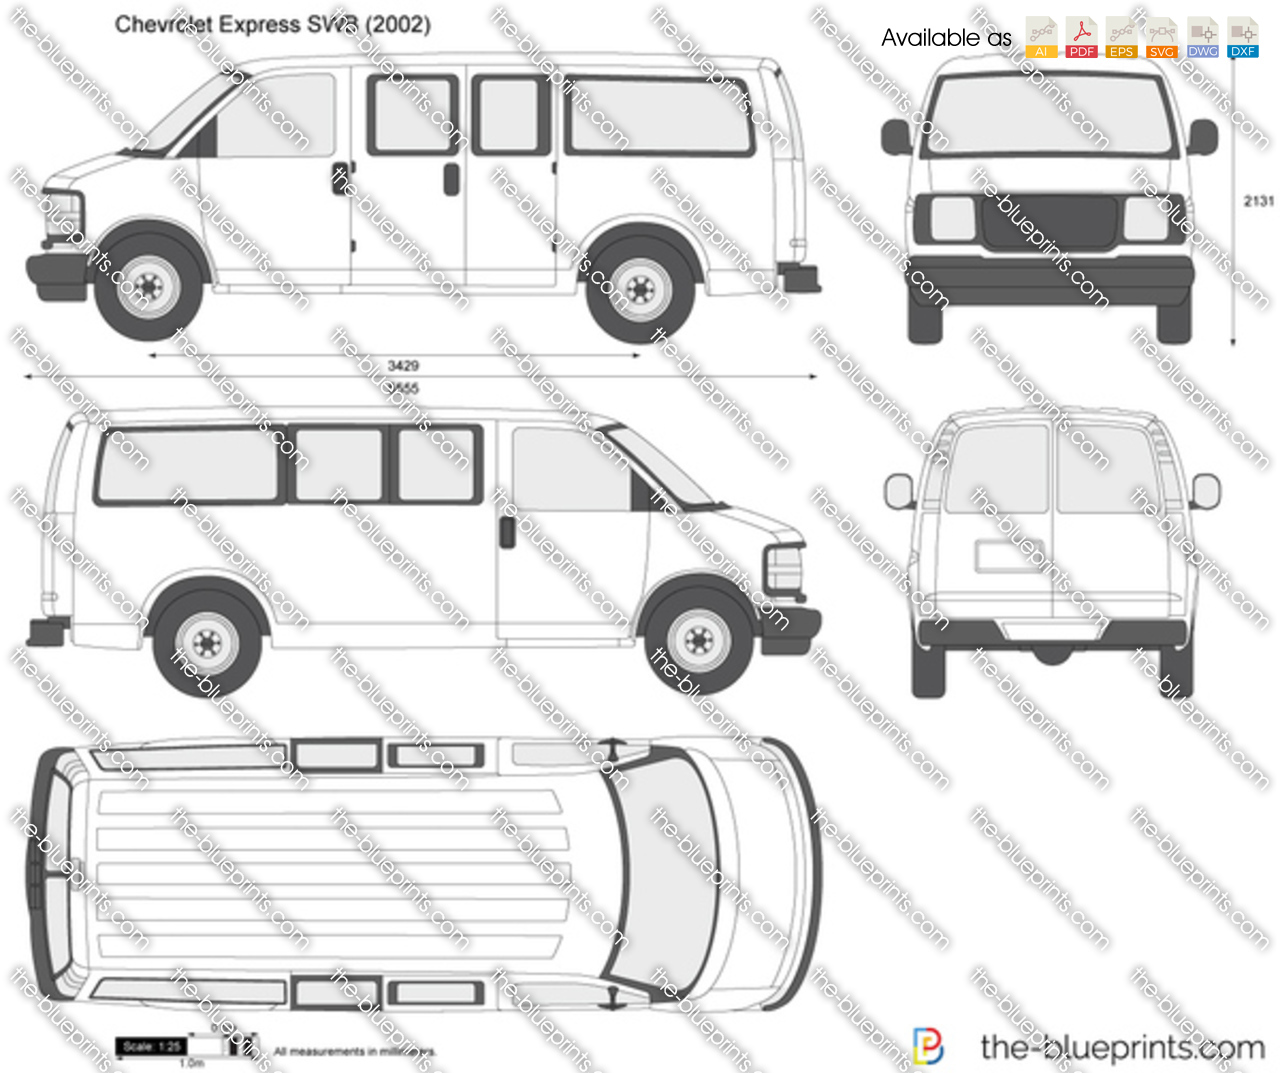 Chevrolet Express SWB Vector Drawing